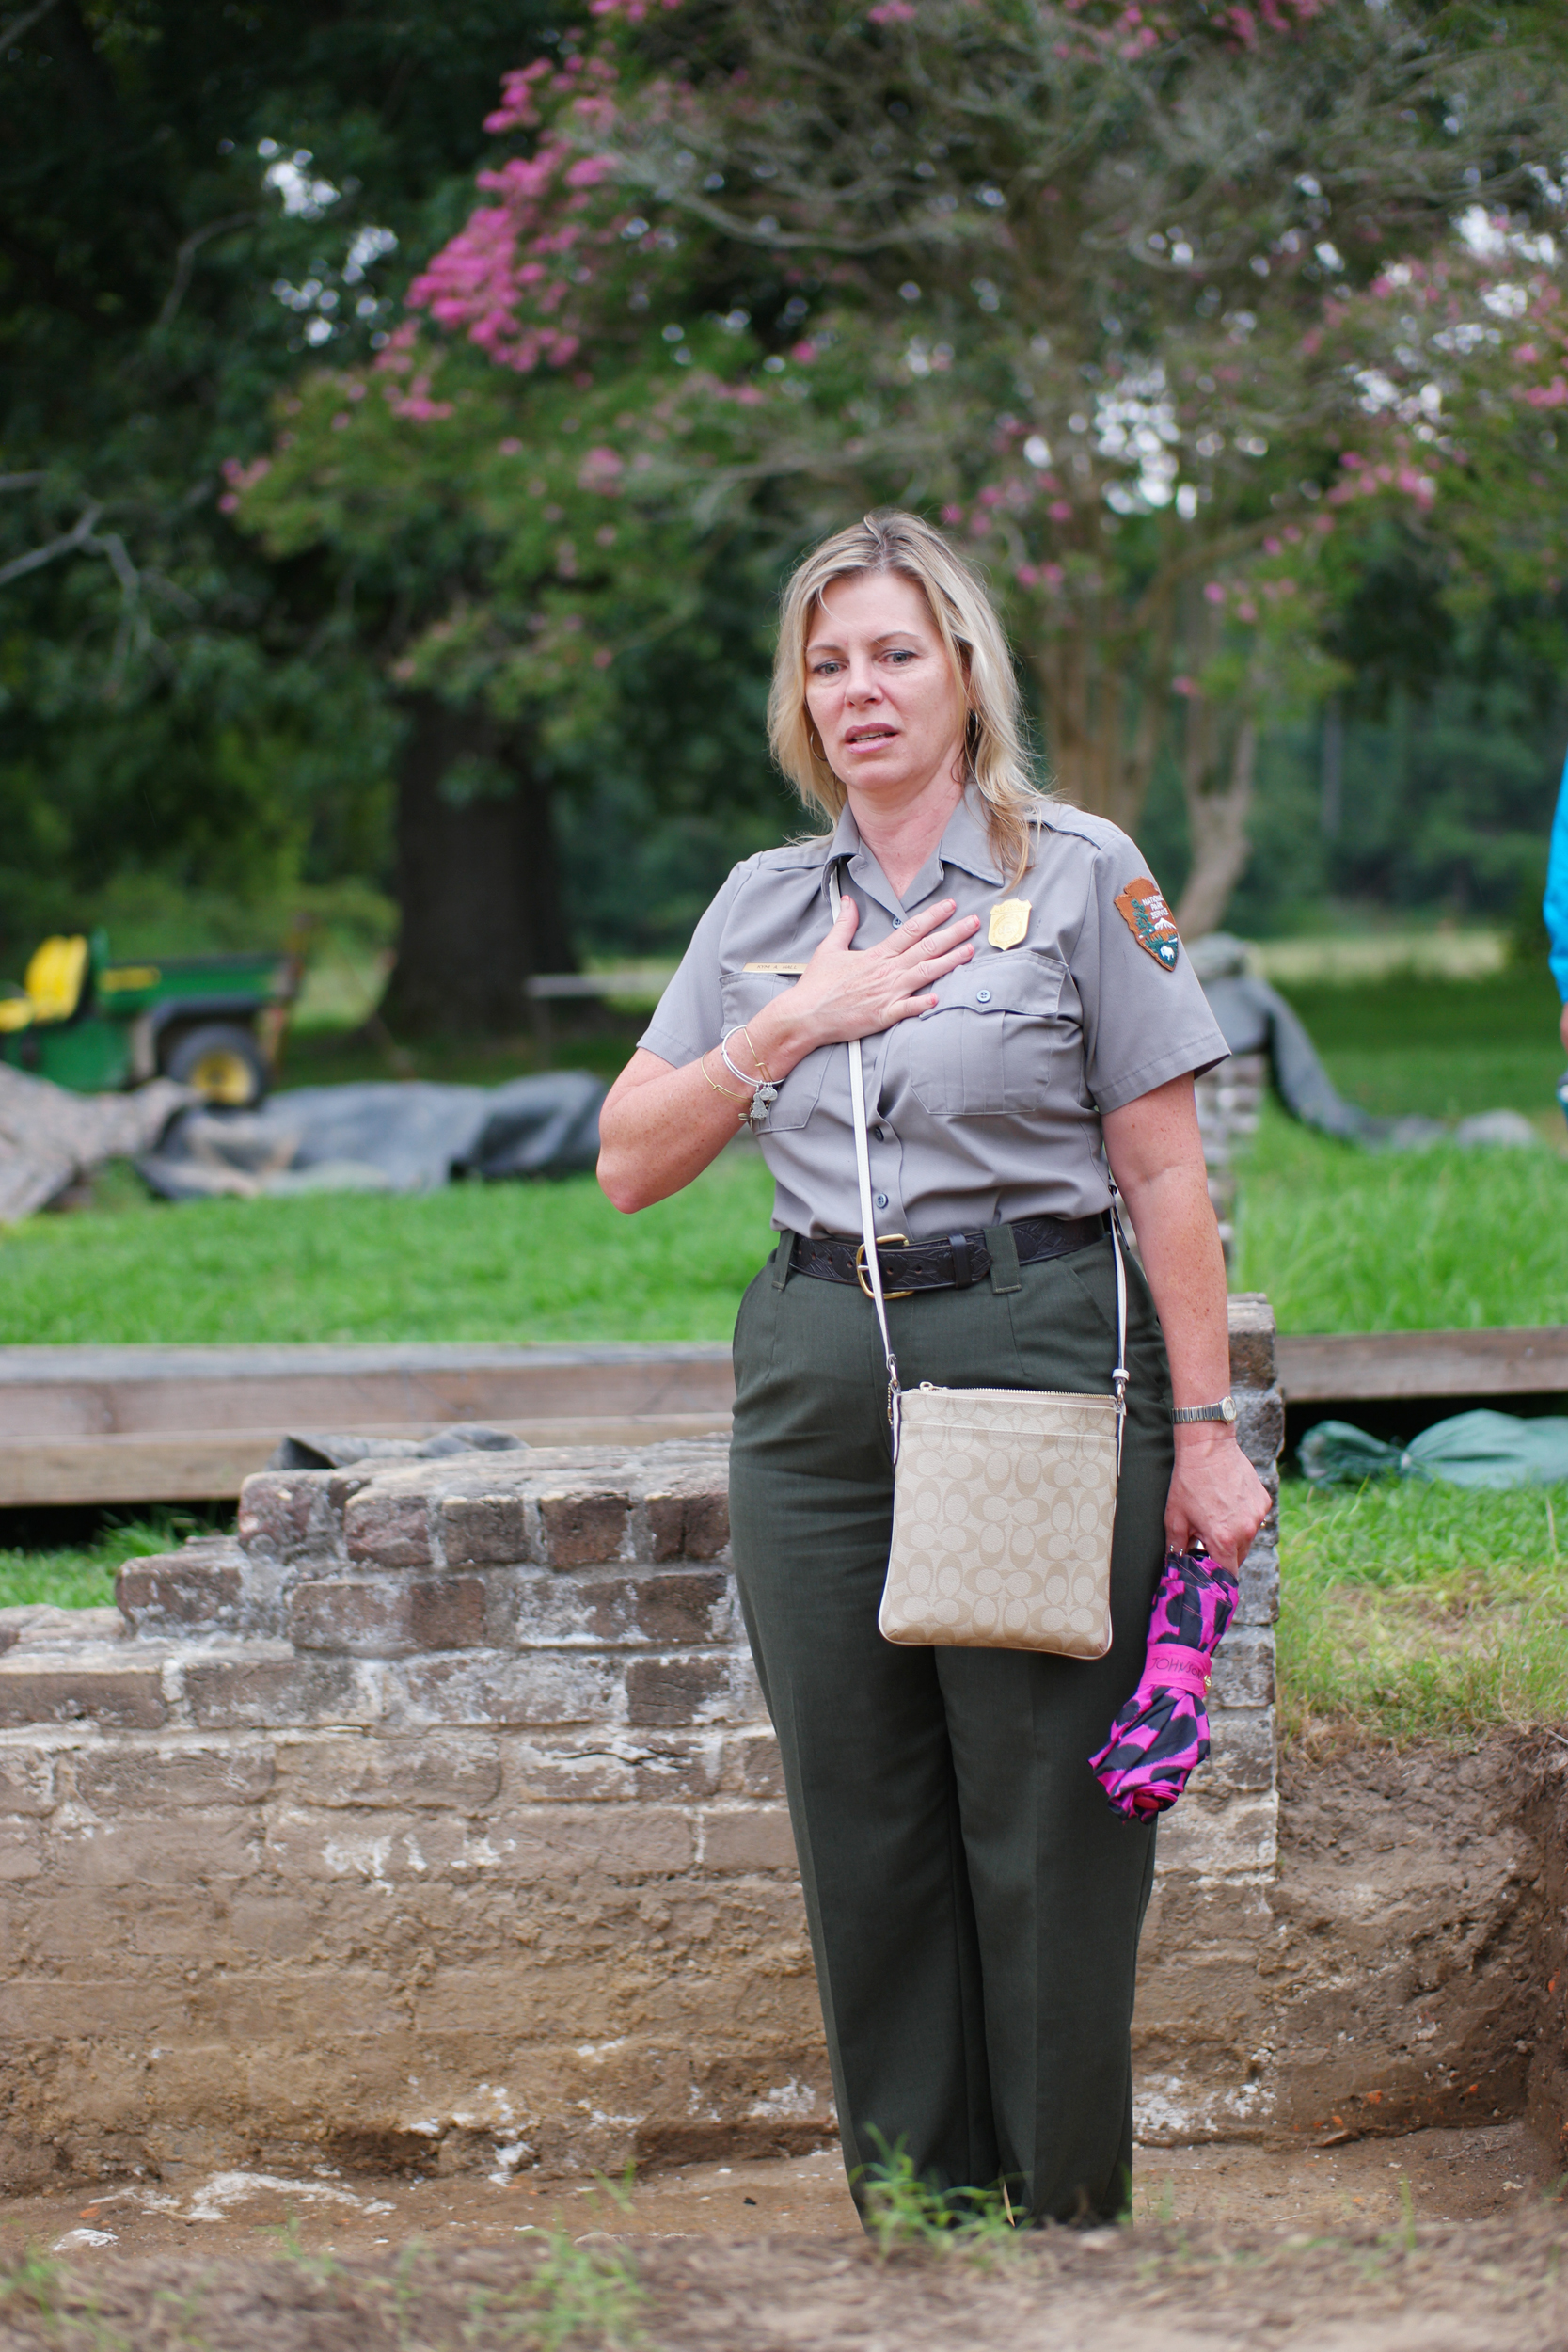 Image: Kym Hall, the Superintendent for Colonial National Historical Park.